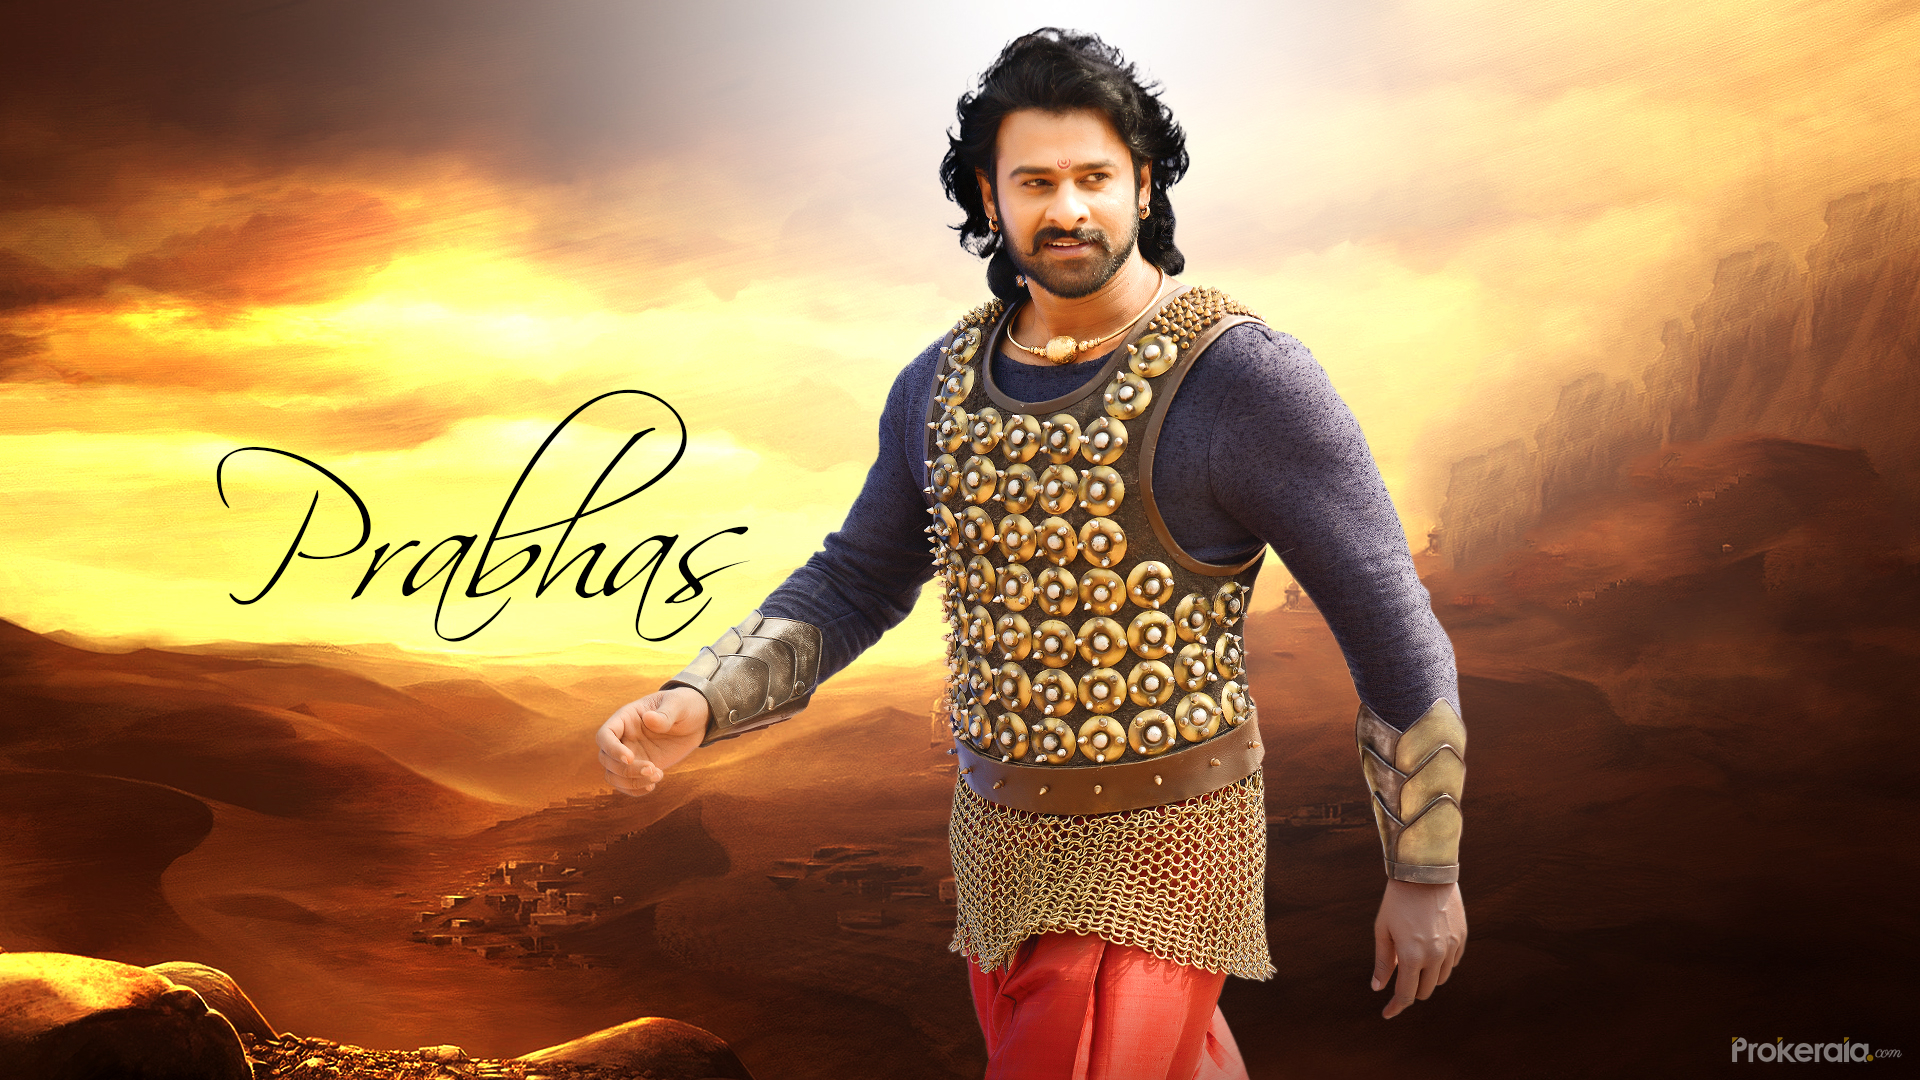 Wallpaper download bahubali - Prabhas Wallpaper 4